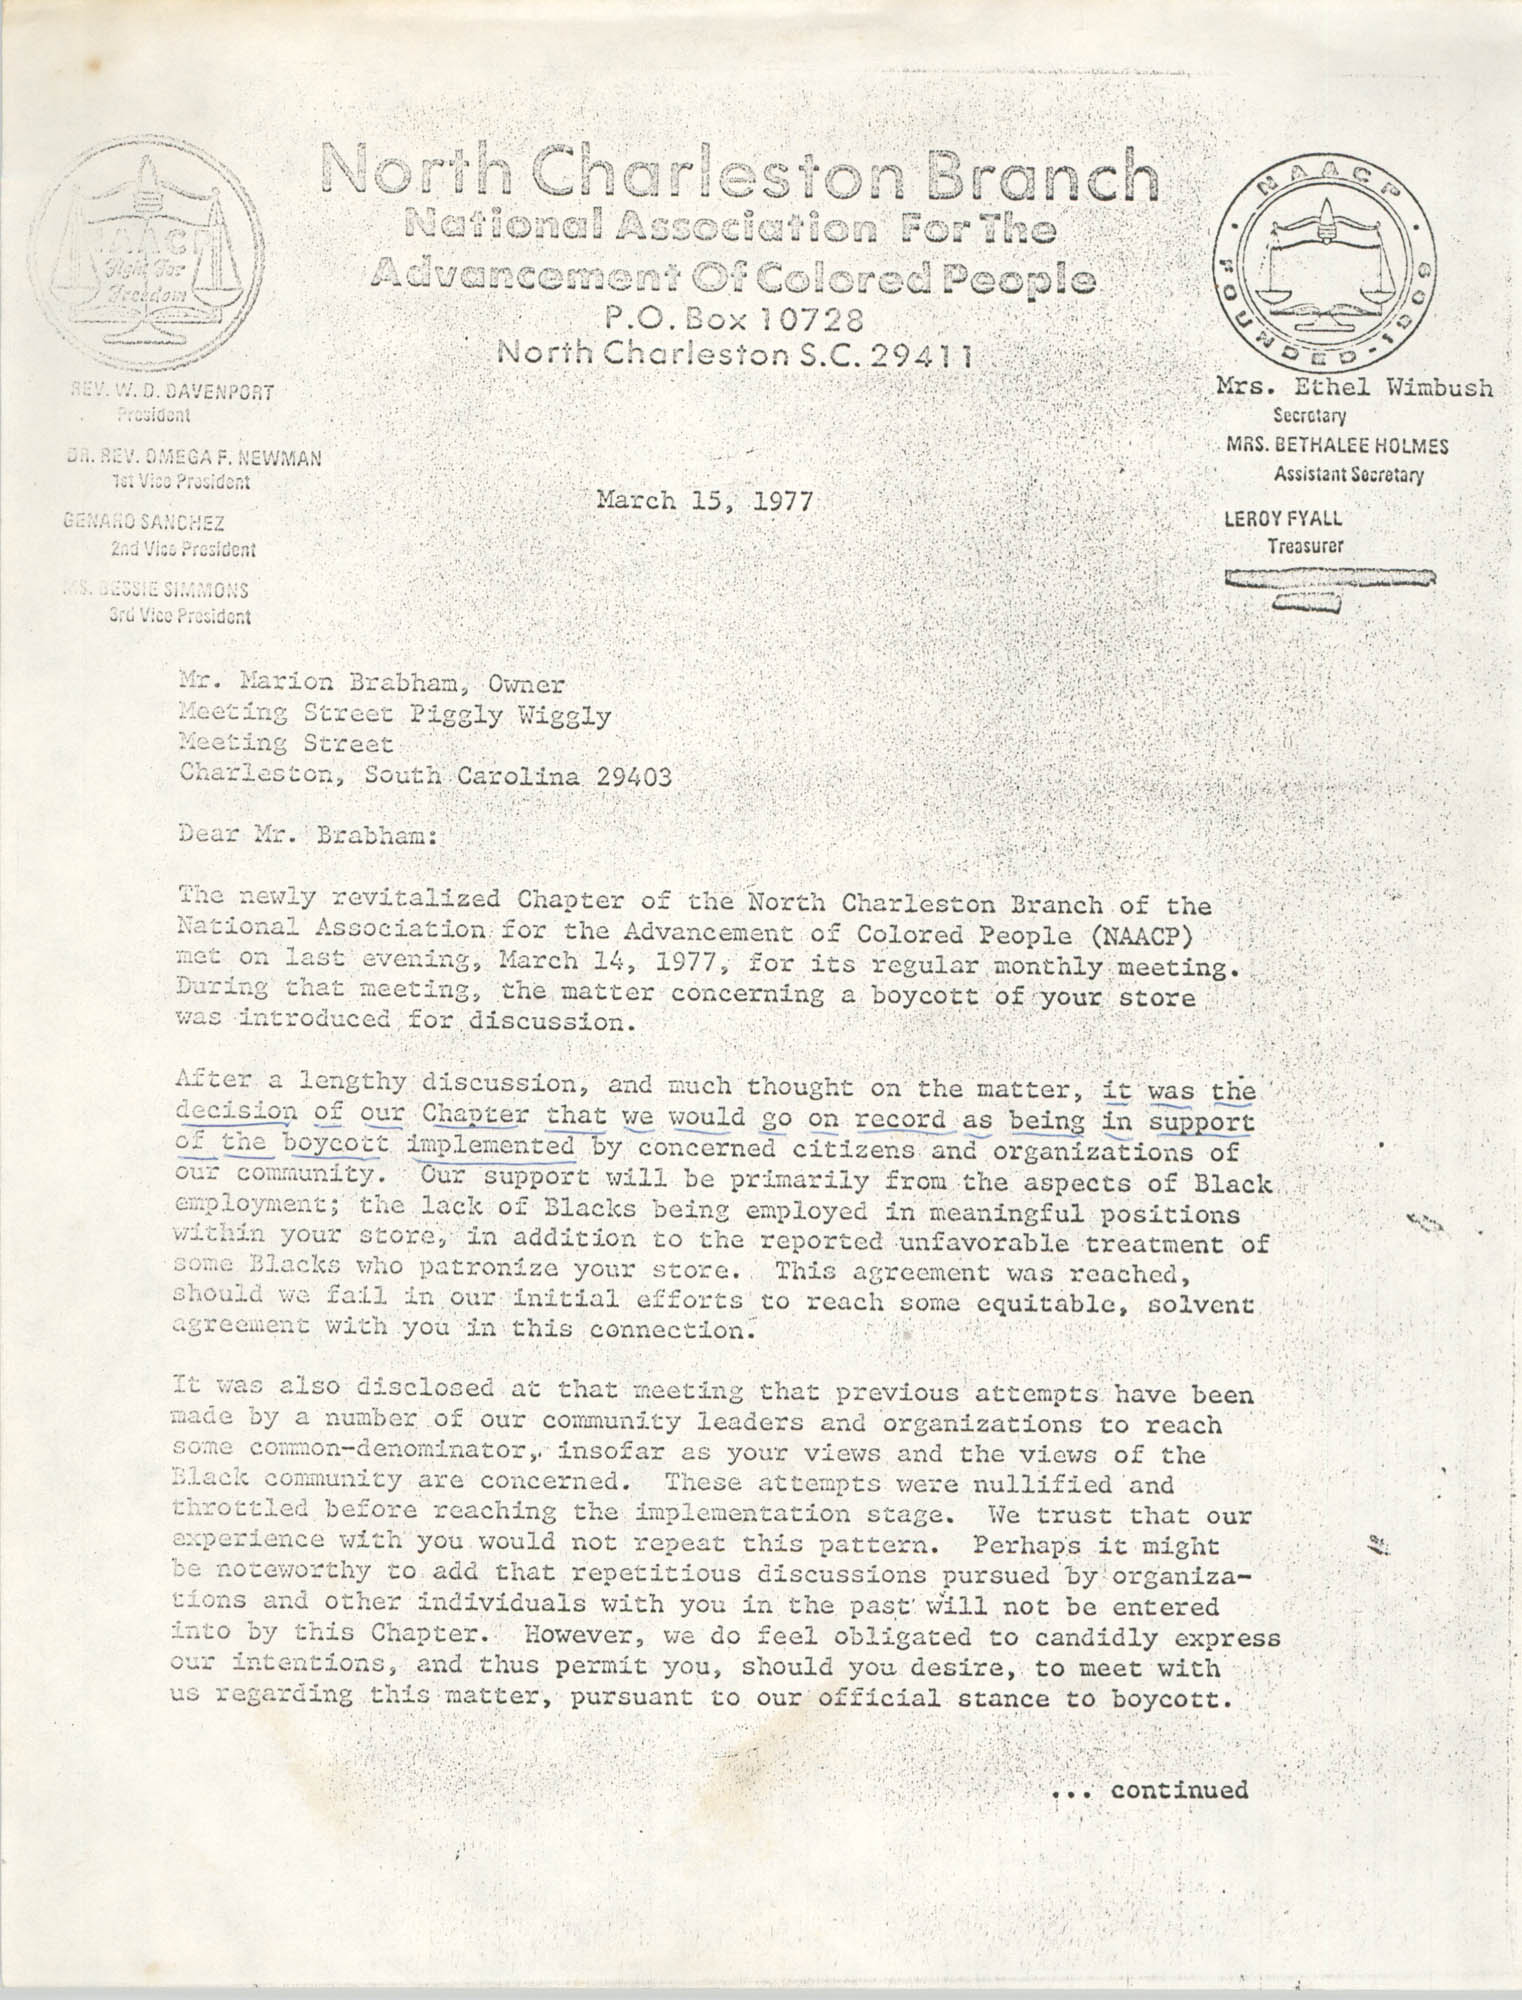 Letter from W. F. Davenport to Marion Brabham, March 15, 1977